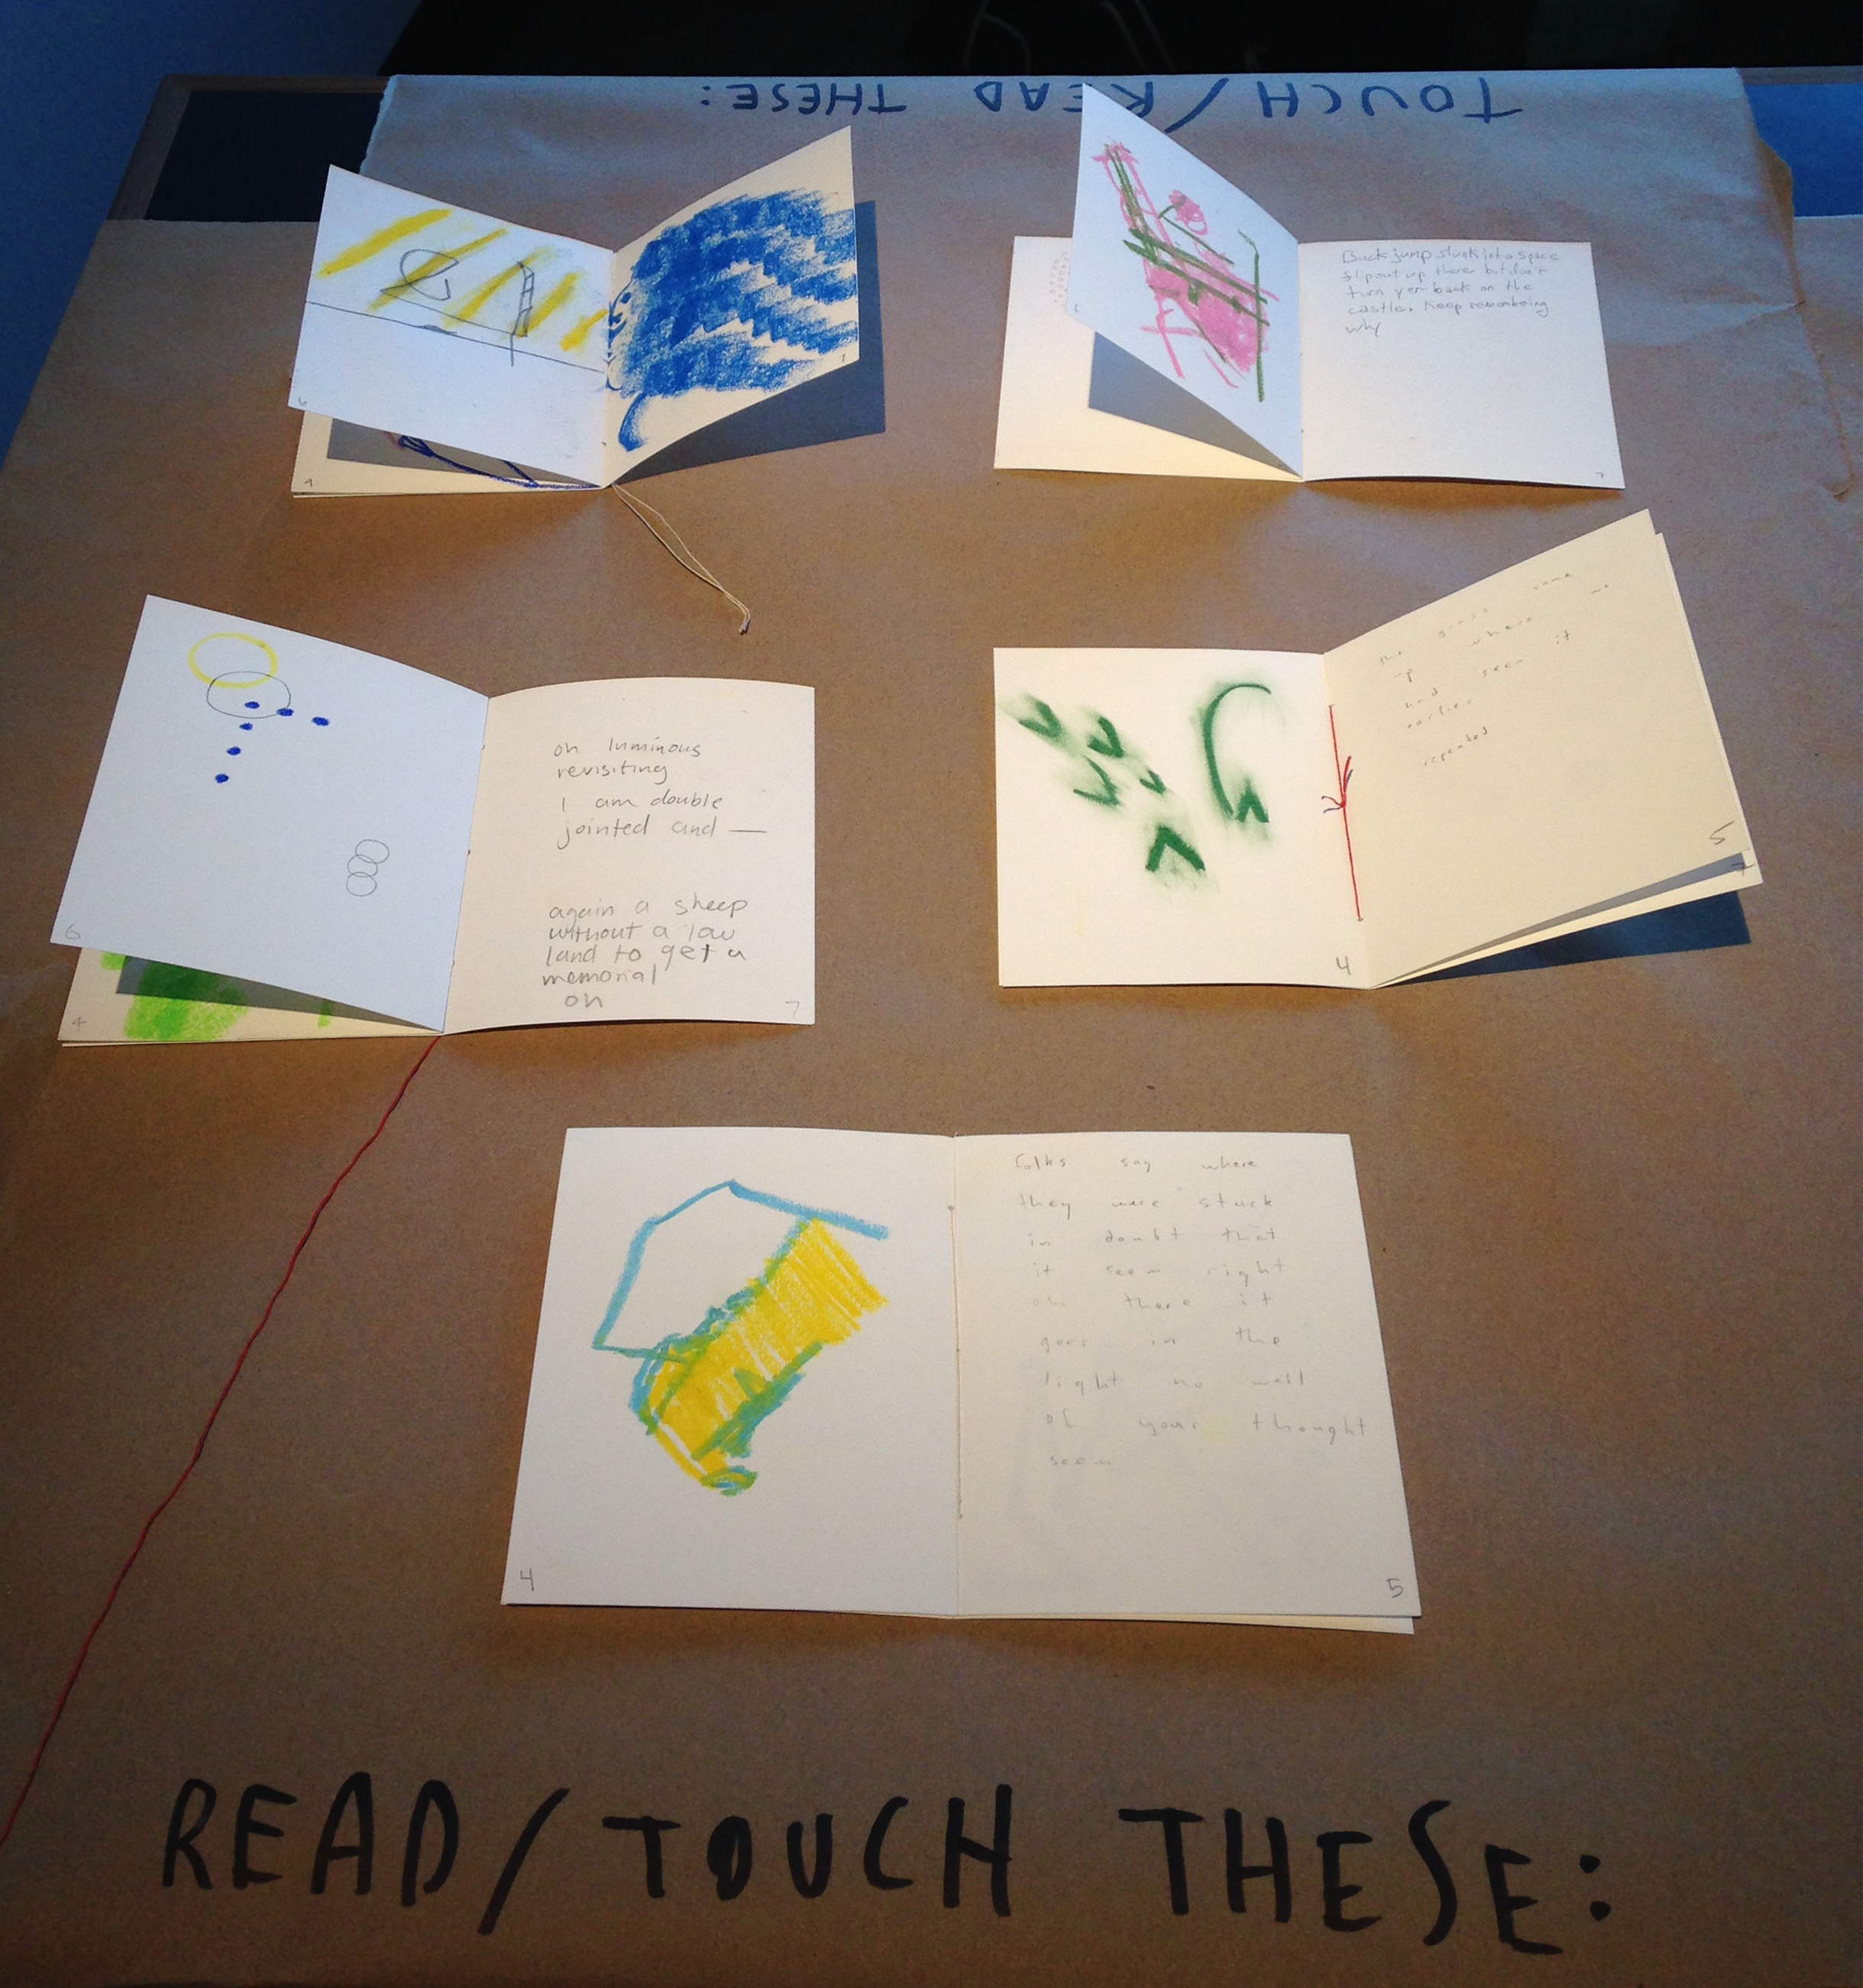 student work from workshop at The Evergreen State College, 2011